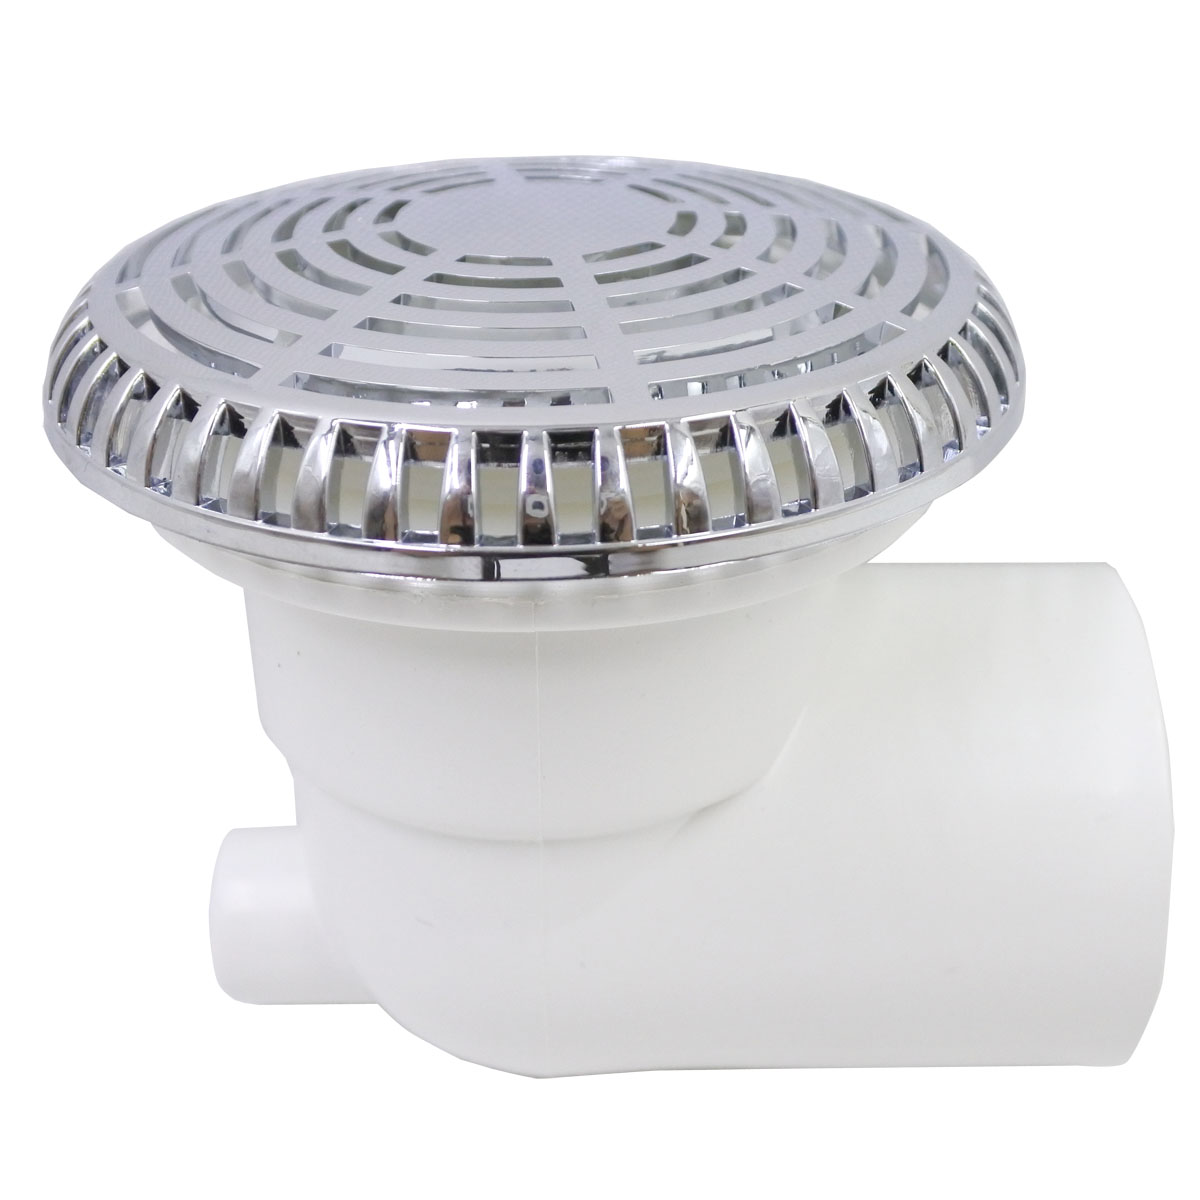 96mm Massage Tub Water Suctions,Chrome-plated Surface Spider Shape,spa Massage Tub Accessories